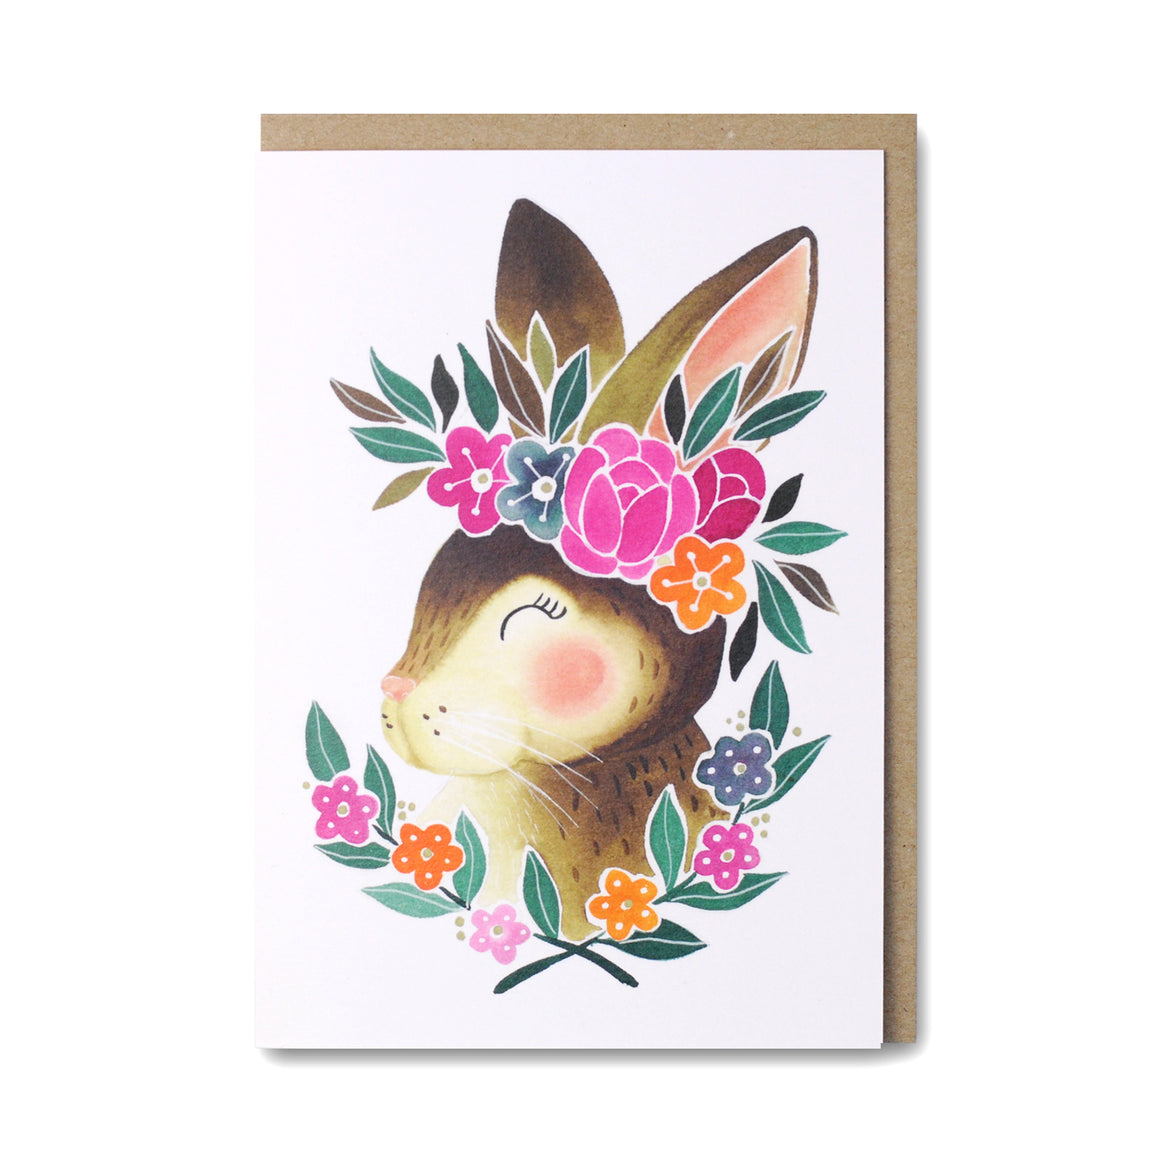 Bunny Greeting Card featuring rabbit wearing flower crown